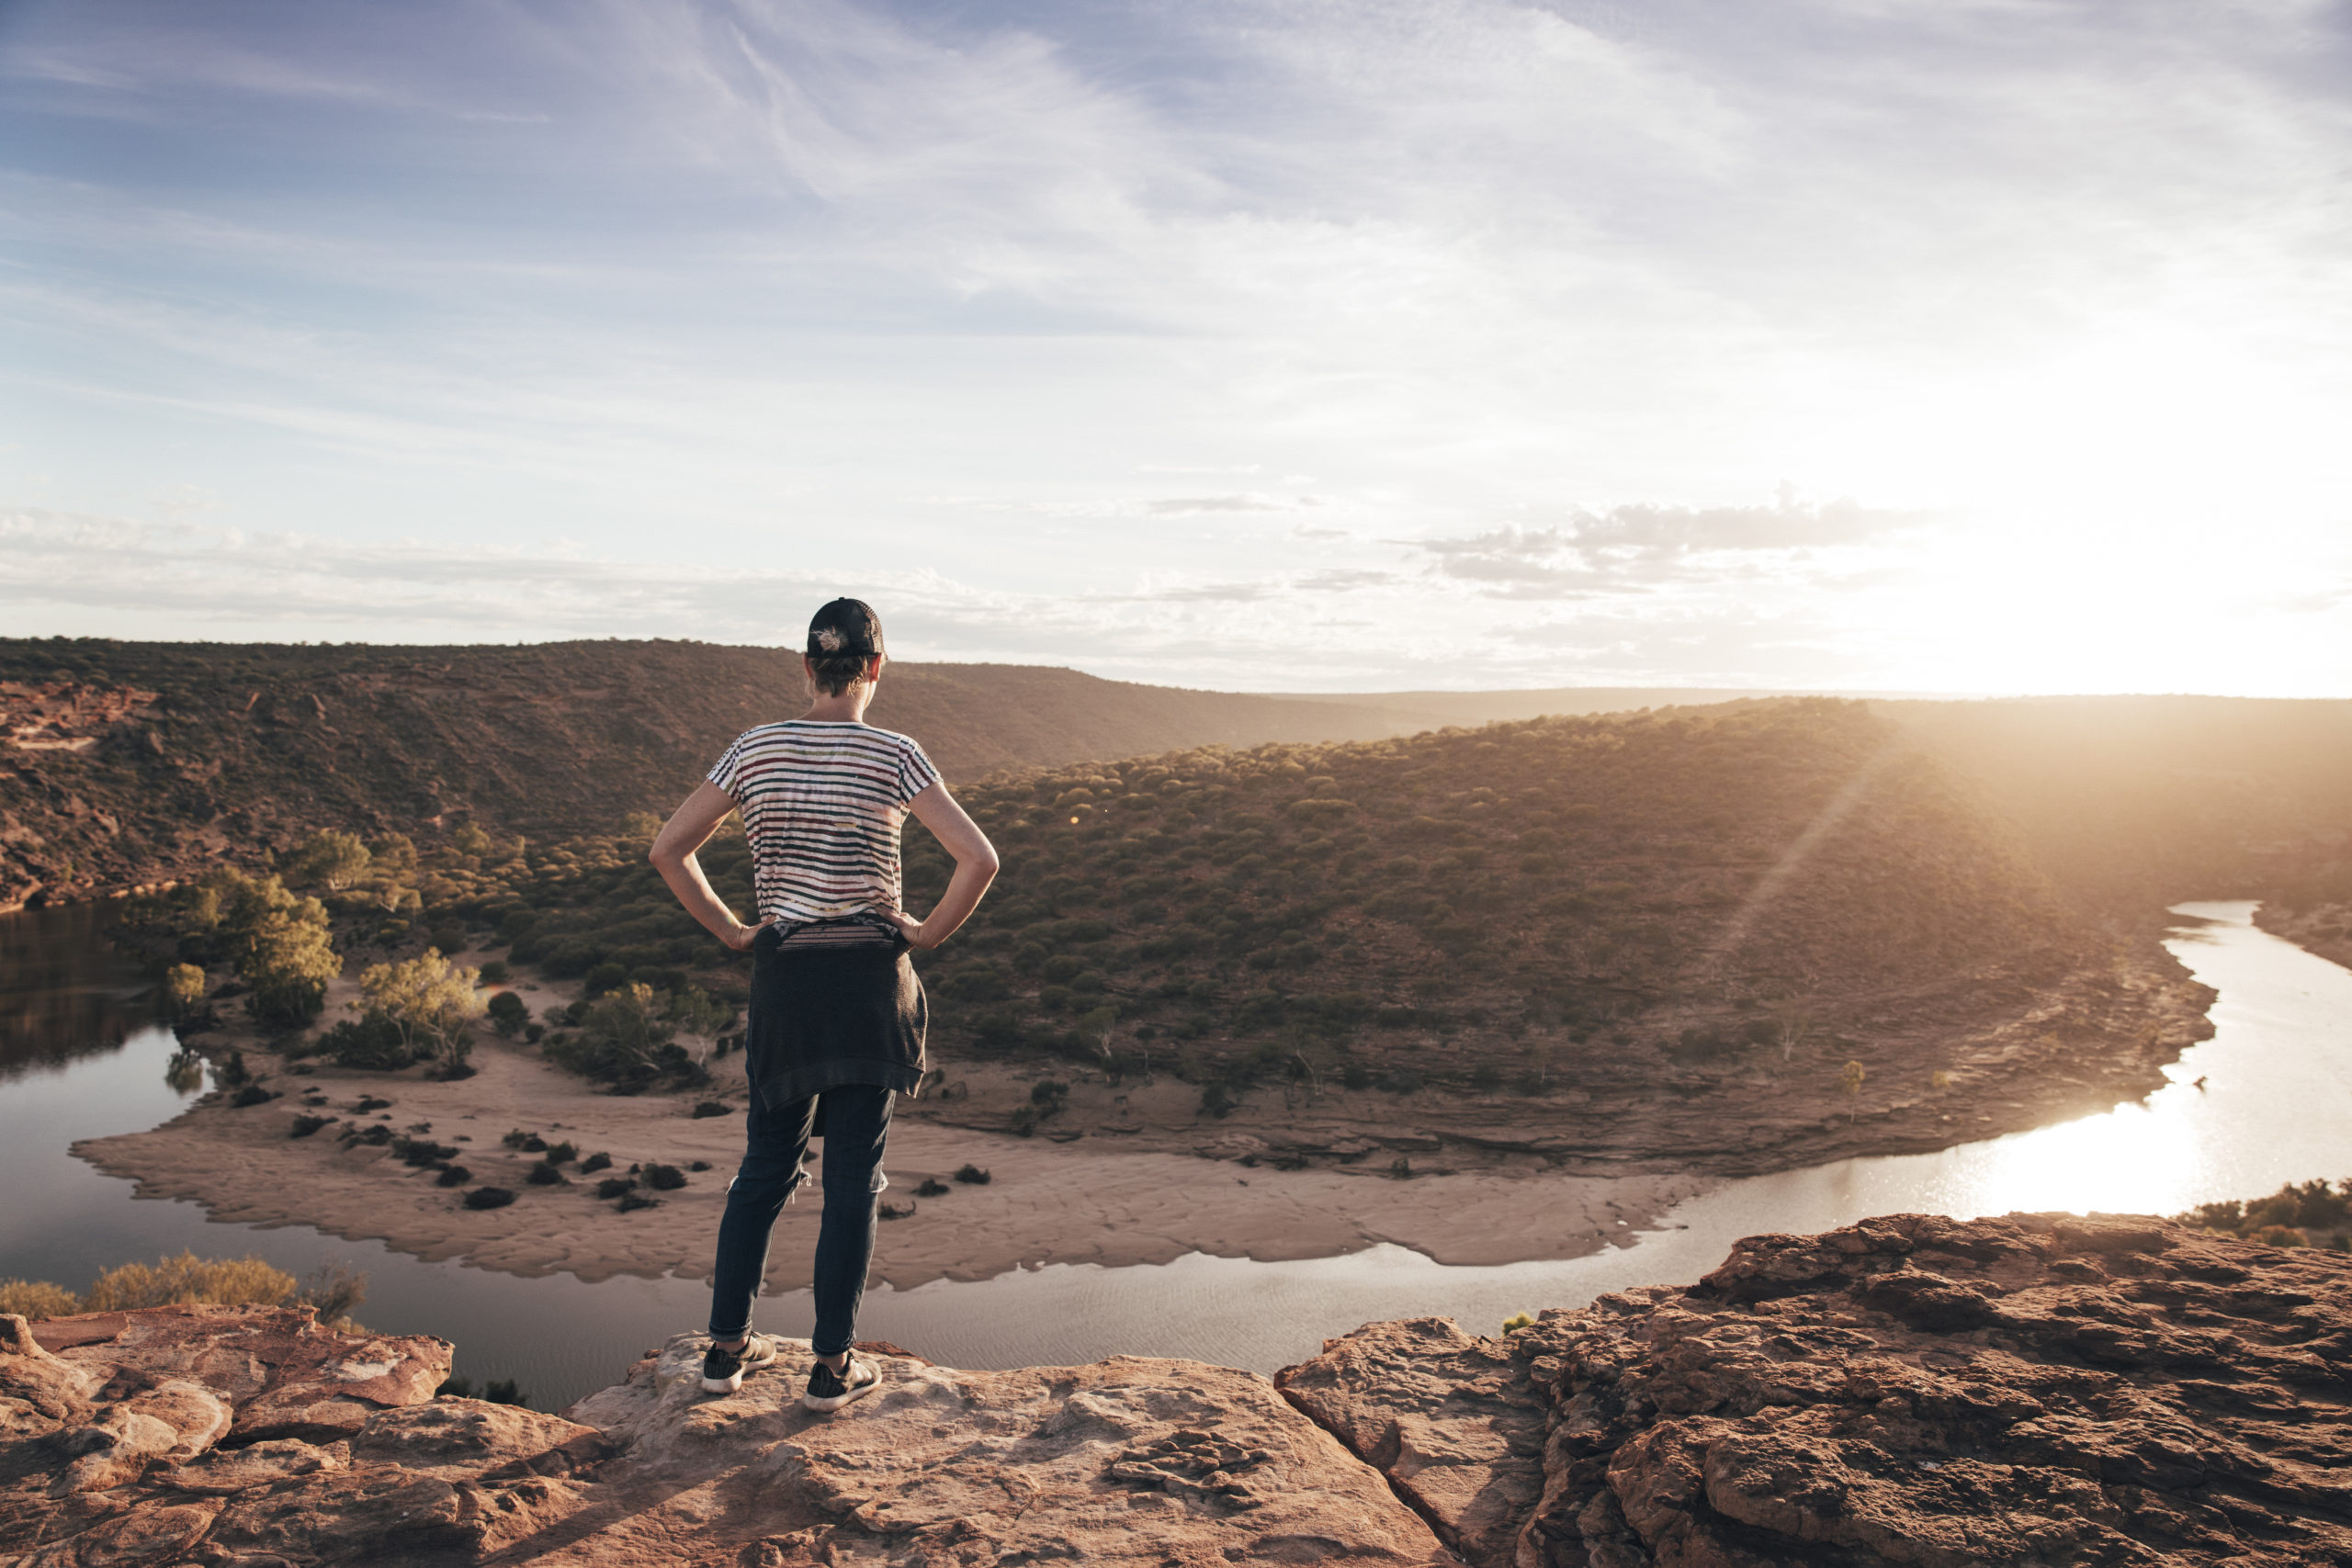 A woman looks out at a river in a desert